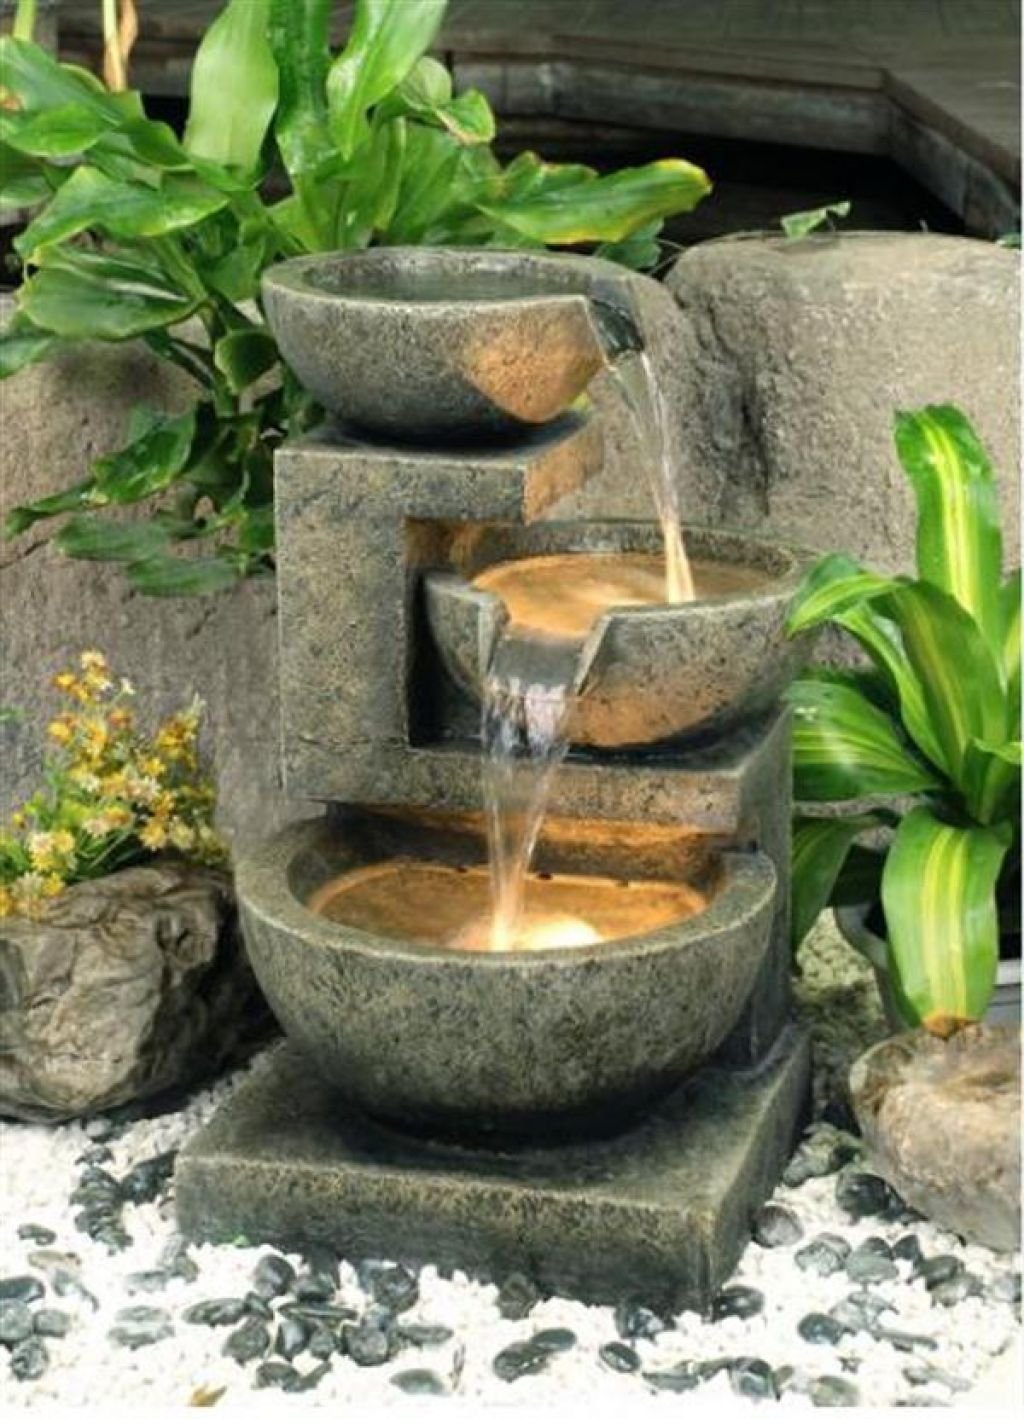 house easy diy project homemade water fountains for garden s focal point inspiring homemade. Black Bedroom Furniture Sets. Home Design Ideas